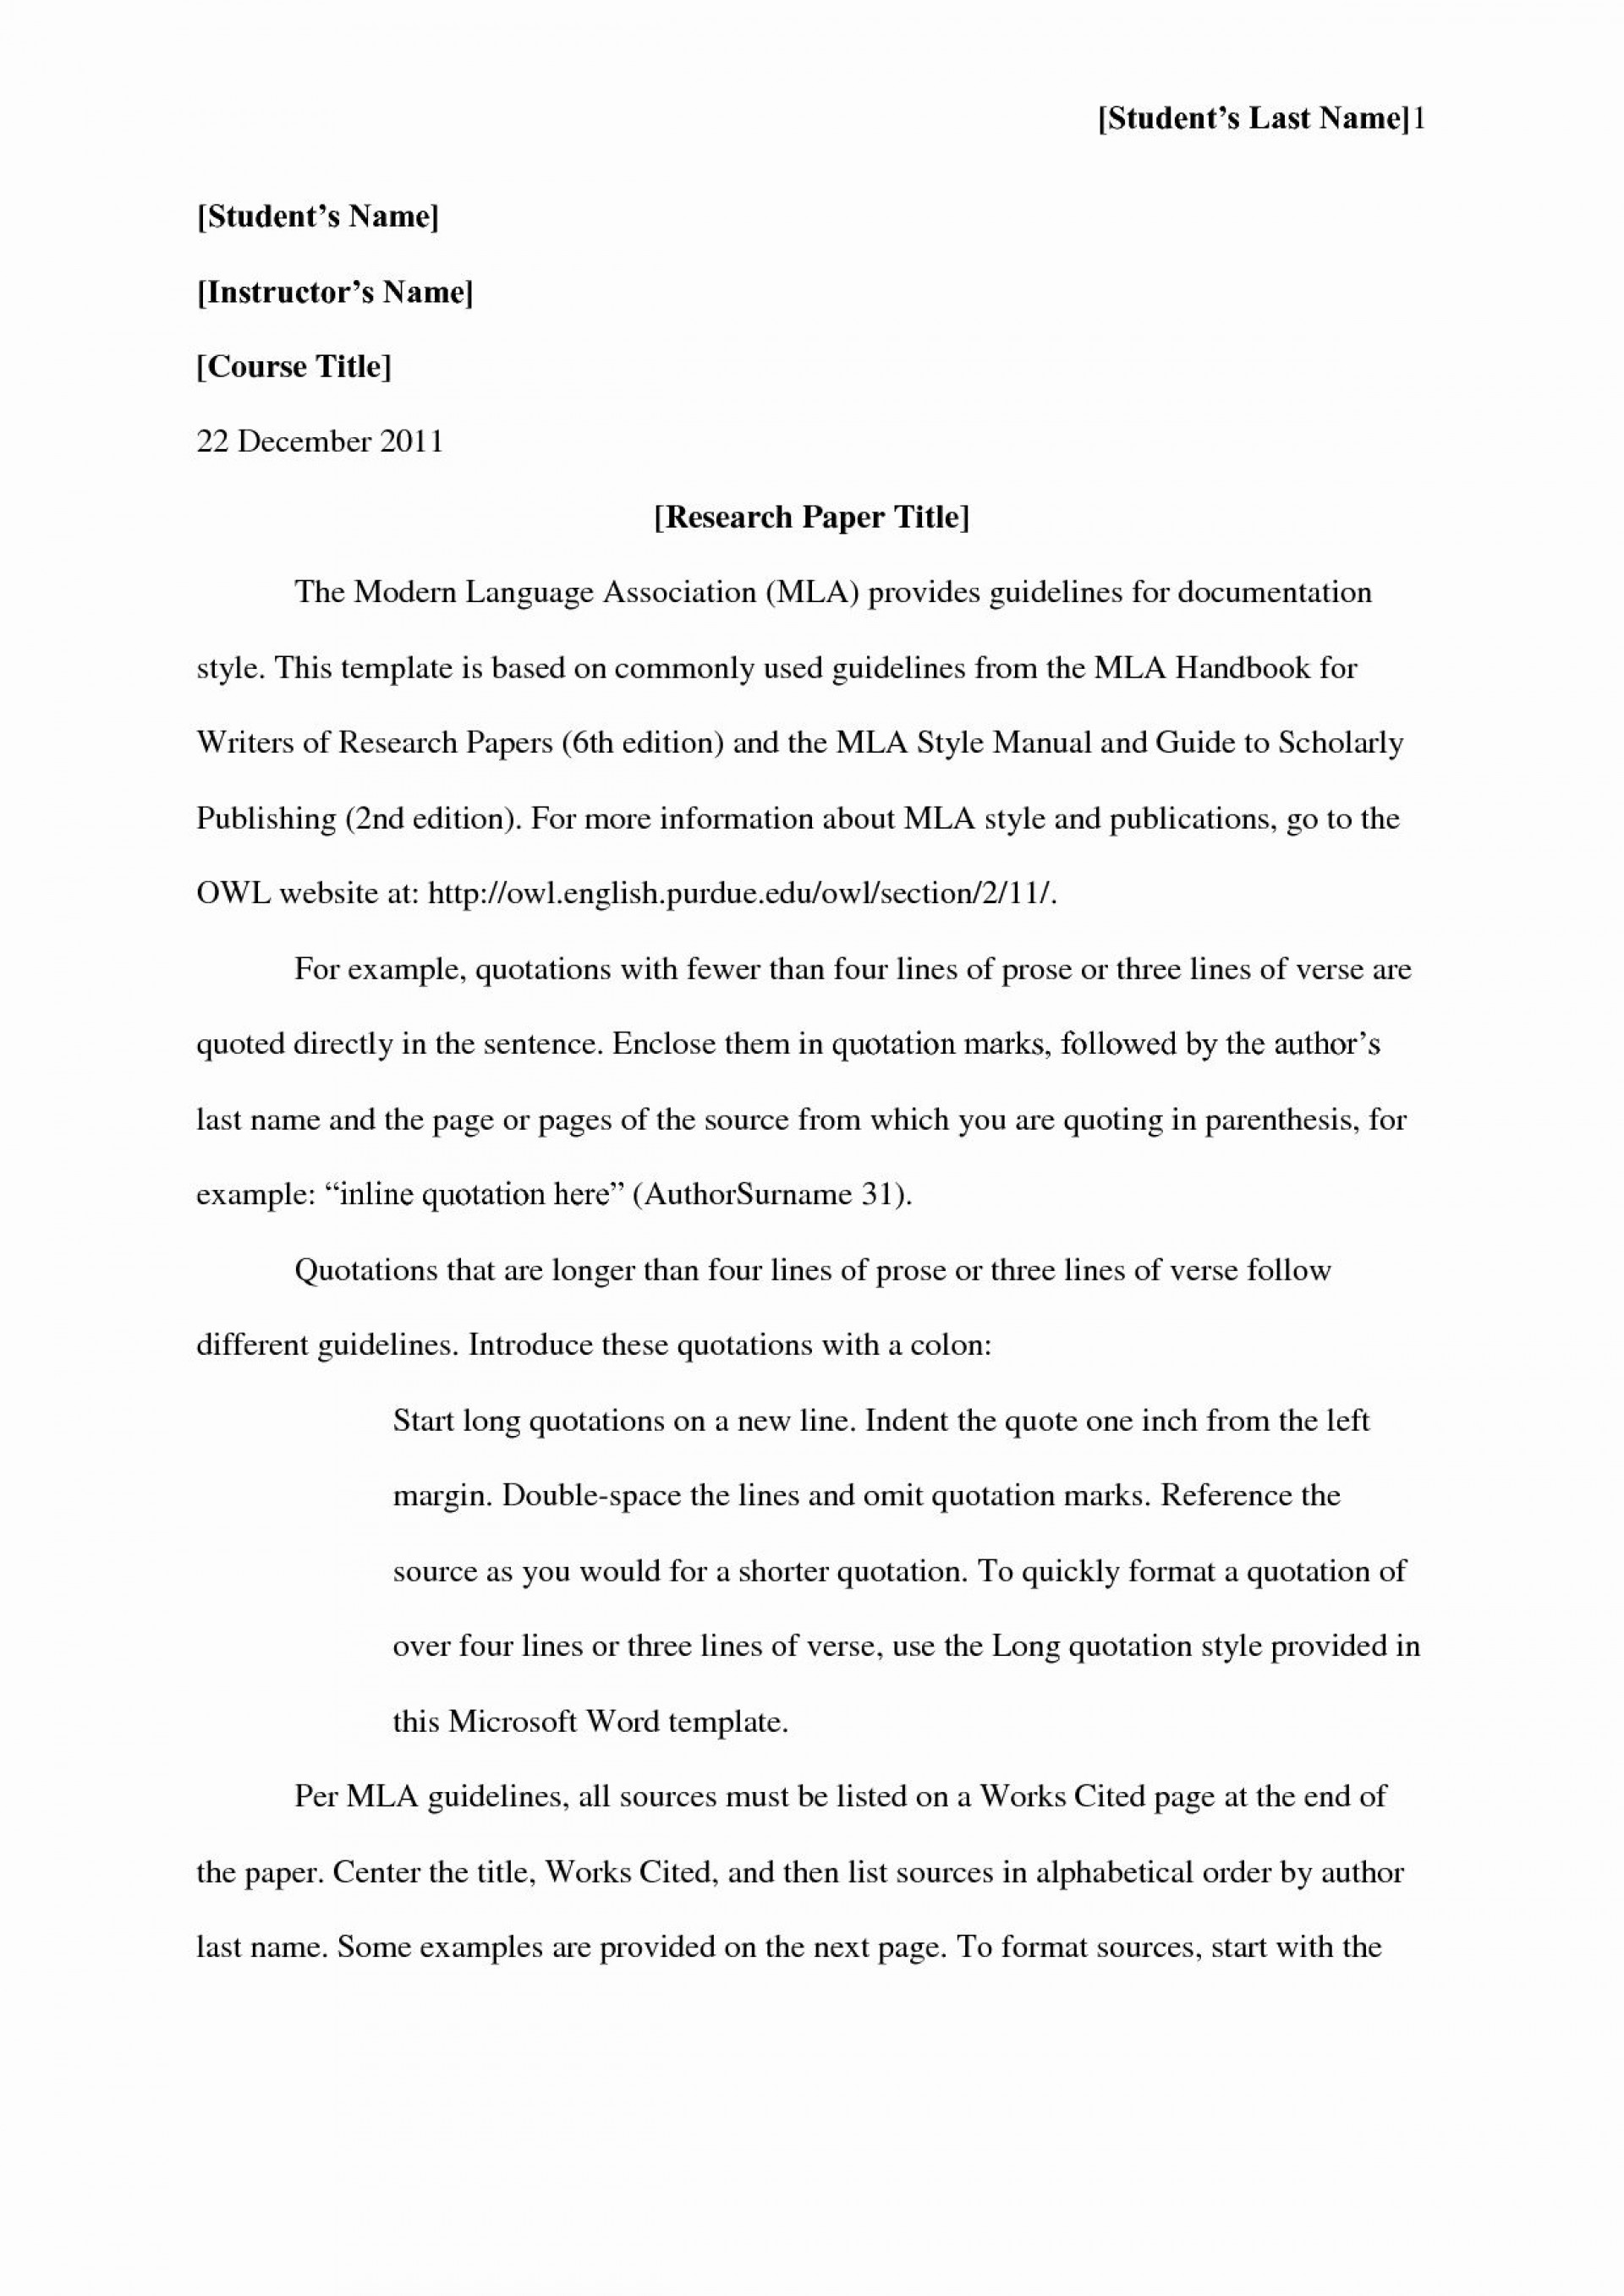 012 Mla Title Page Template Awesome Format Works Cited Scarlet Letter Best Of Apa Style Essay Research Impressive Generator Example Reference Interview 1920